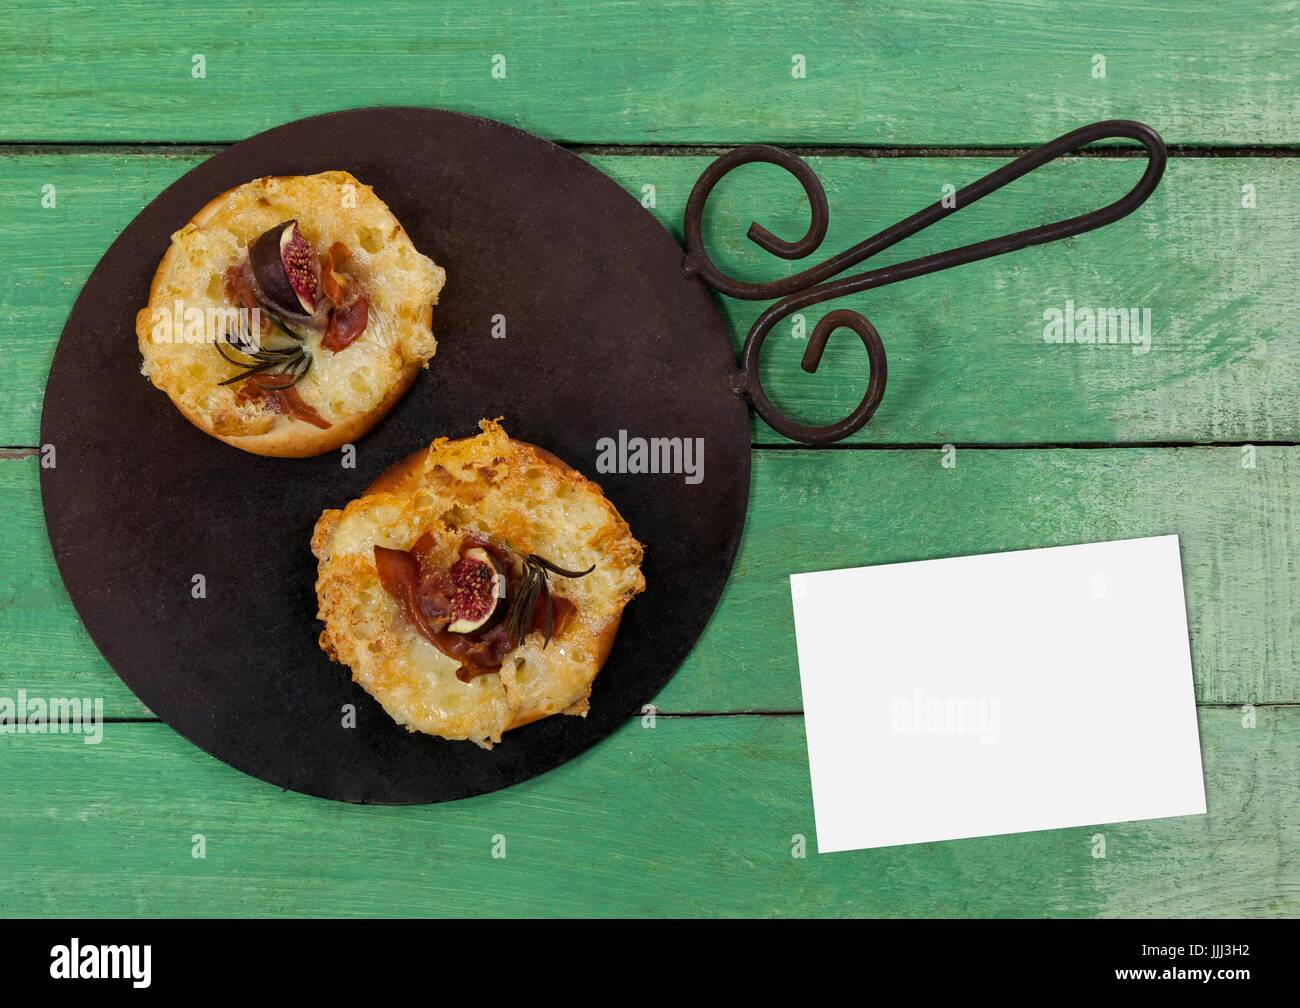 Bussiness card on green wooden desk with food and copy space - Stock Image